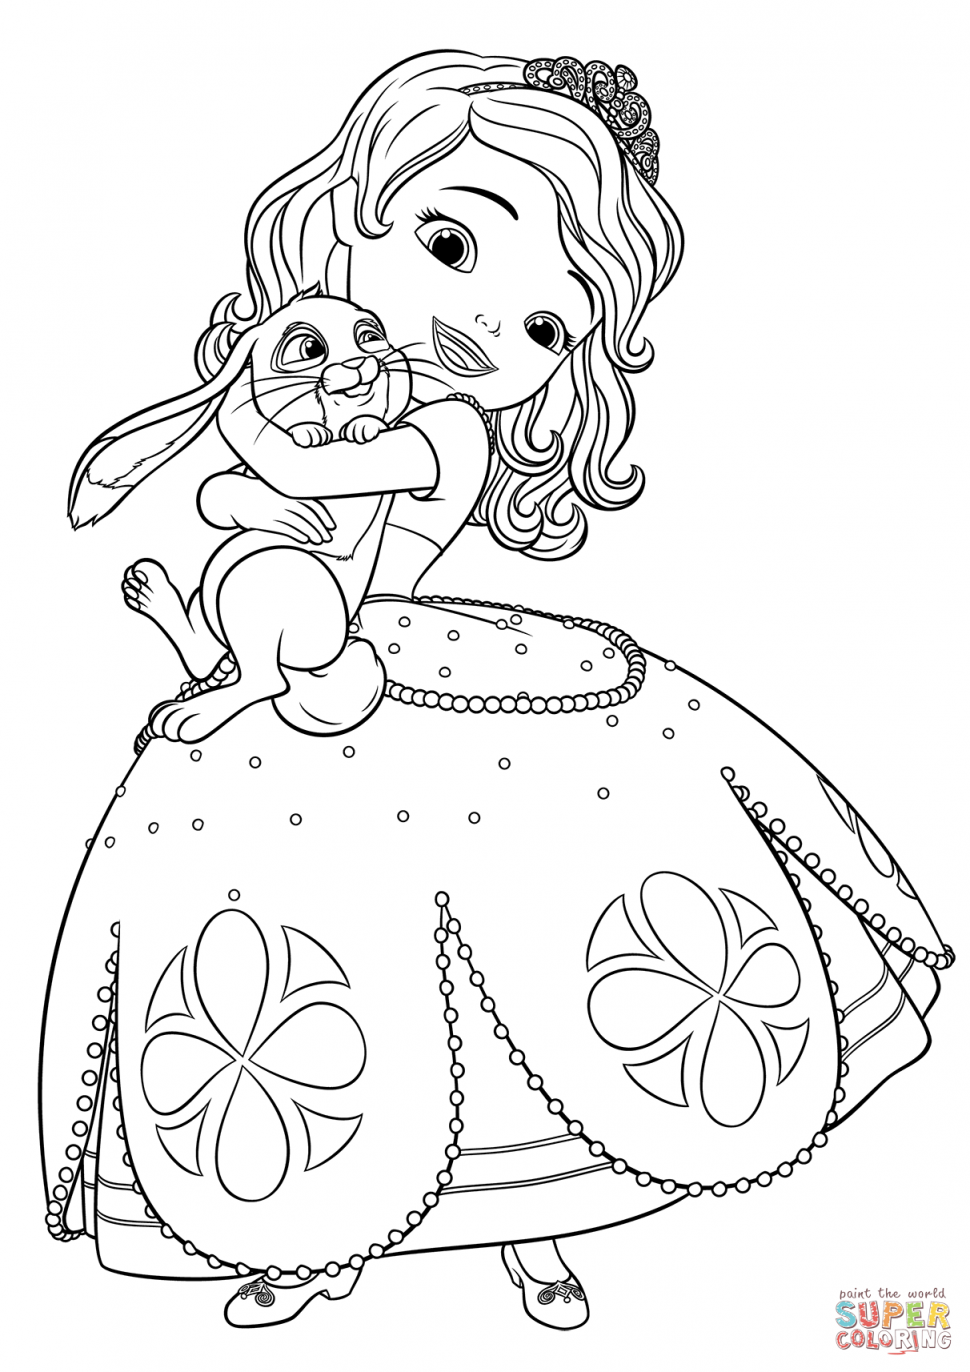 printable sofia the first coloring pages sofia the first coloring pages for girls to print for free printable first coloring pages the sofia